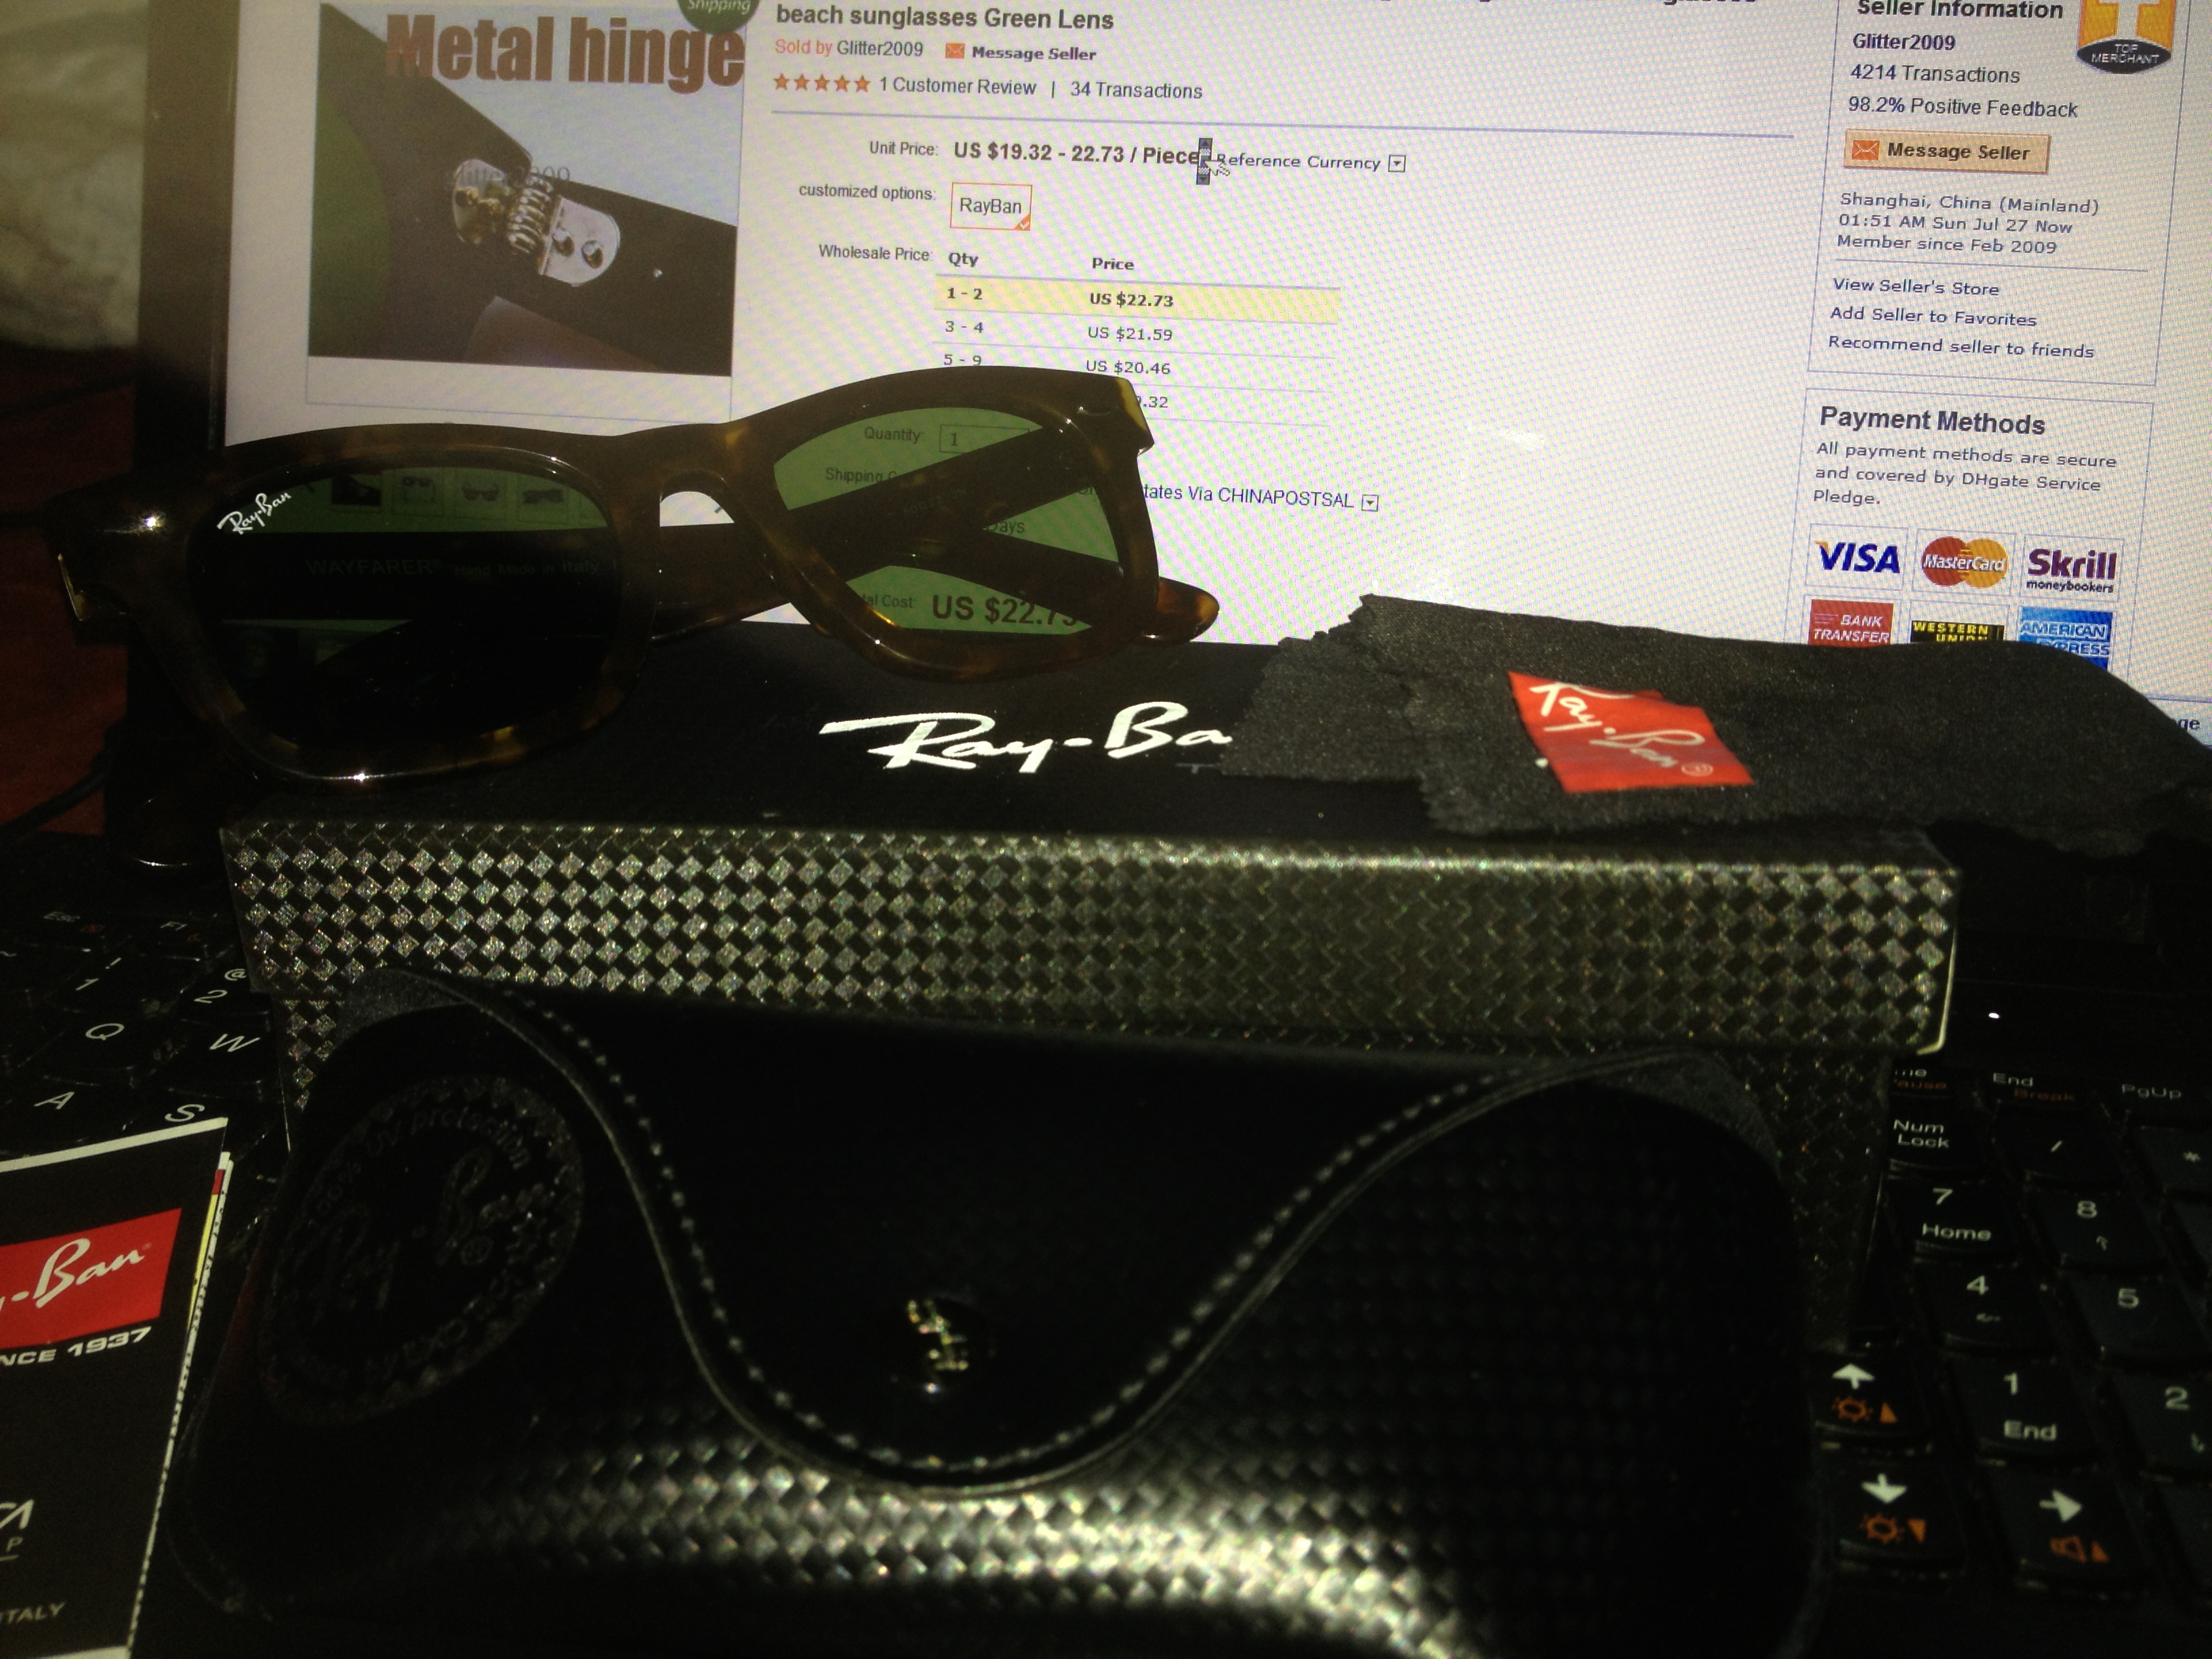 Ray Ban On Ebay Fake Nails « Heritage Malta